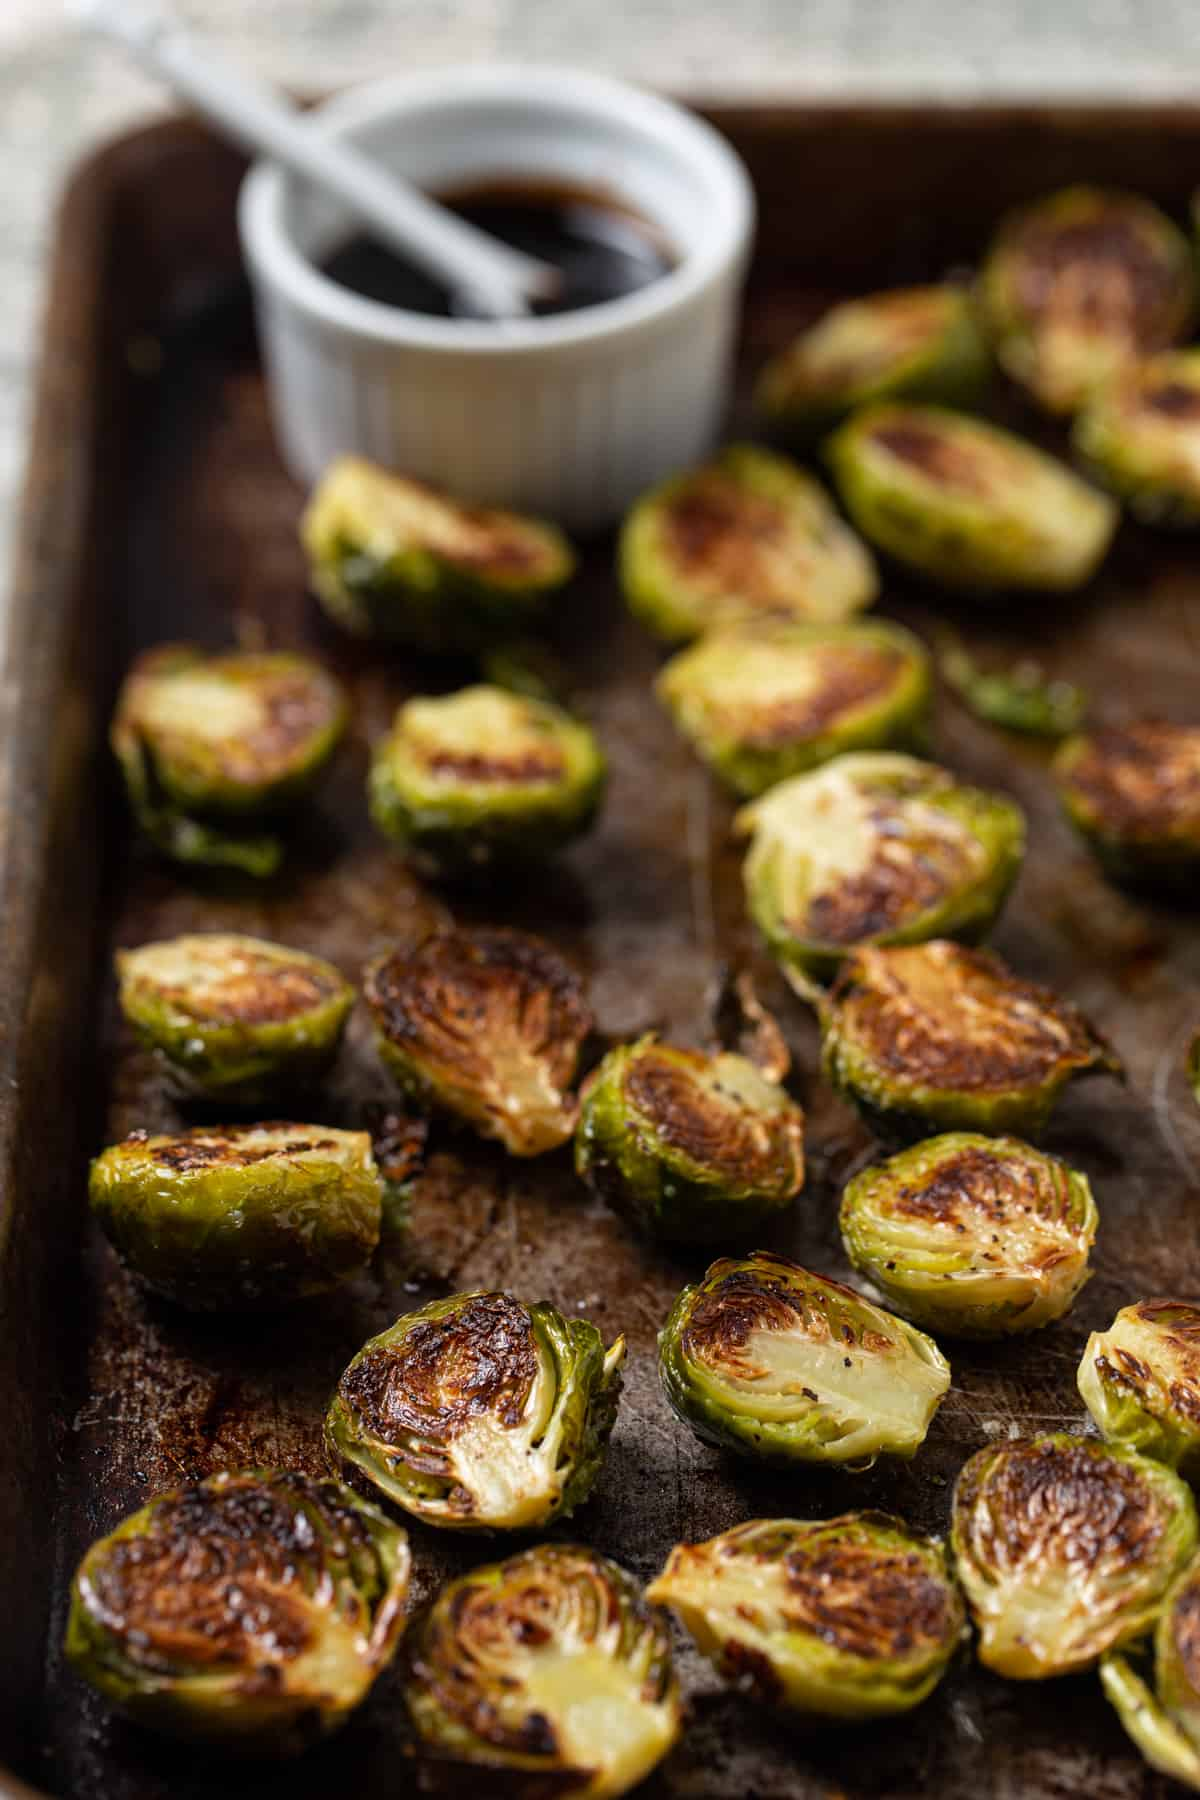 A close up of food, with Brussels sprout.